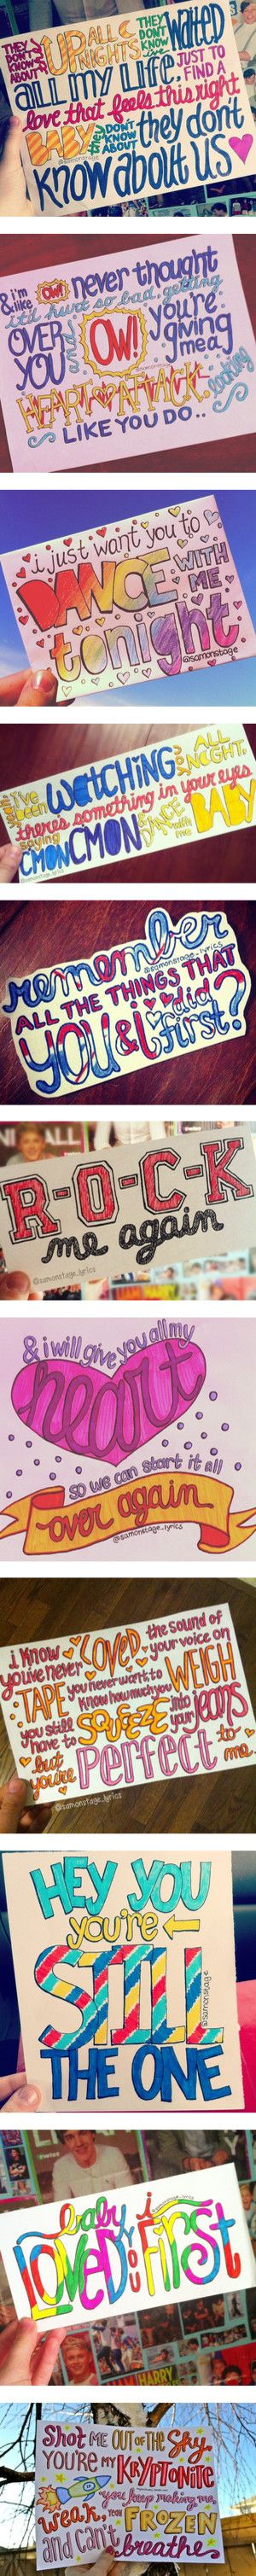 """one direction lyrics :)""I wanna learn how to draw like that"